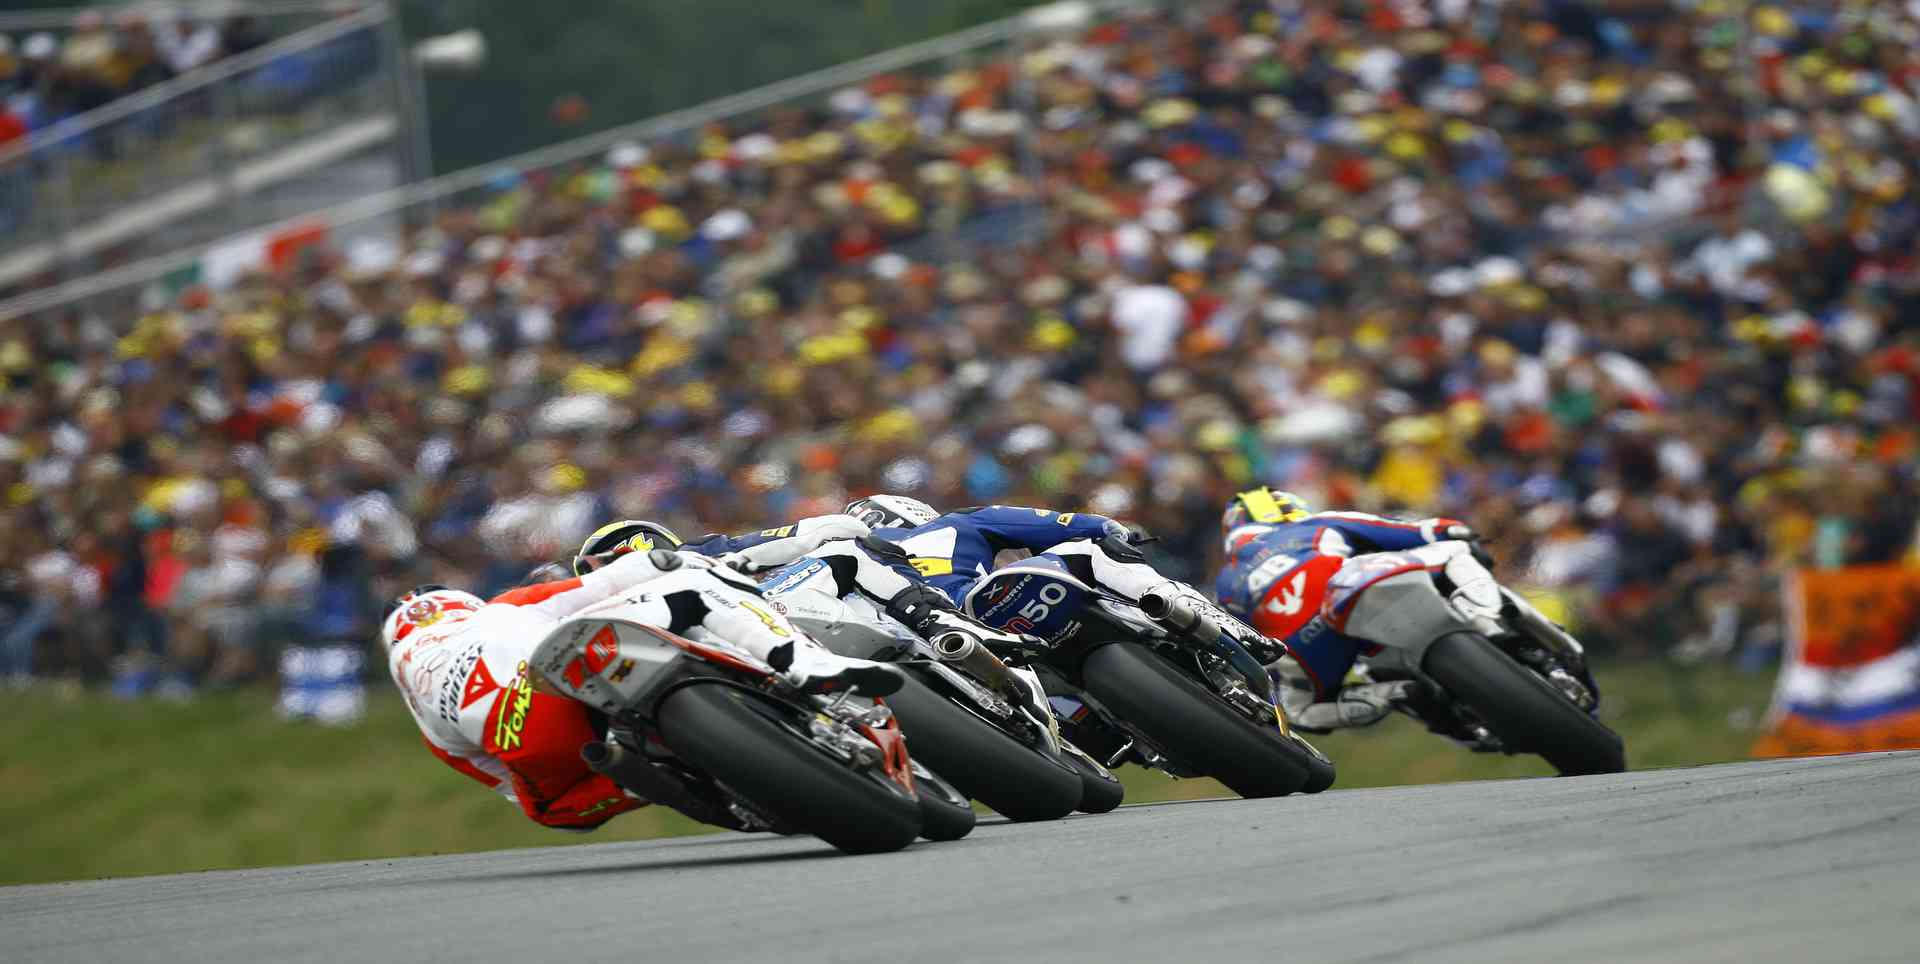 2018 Superbike World Championship Schedule